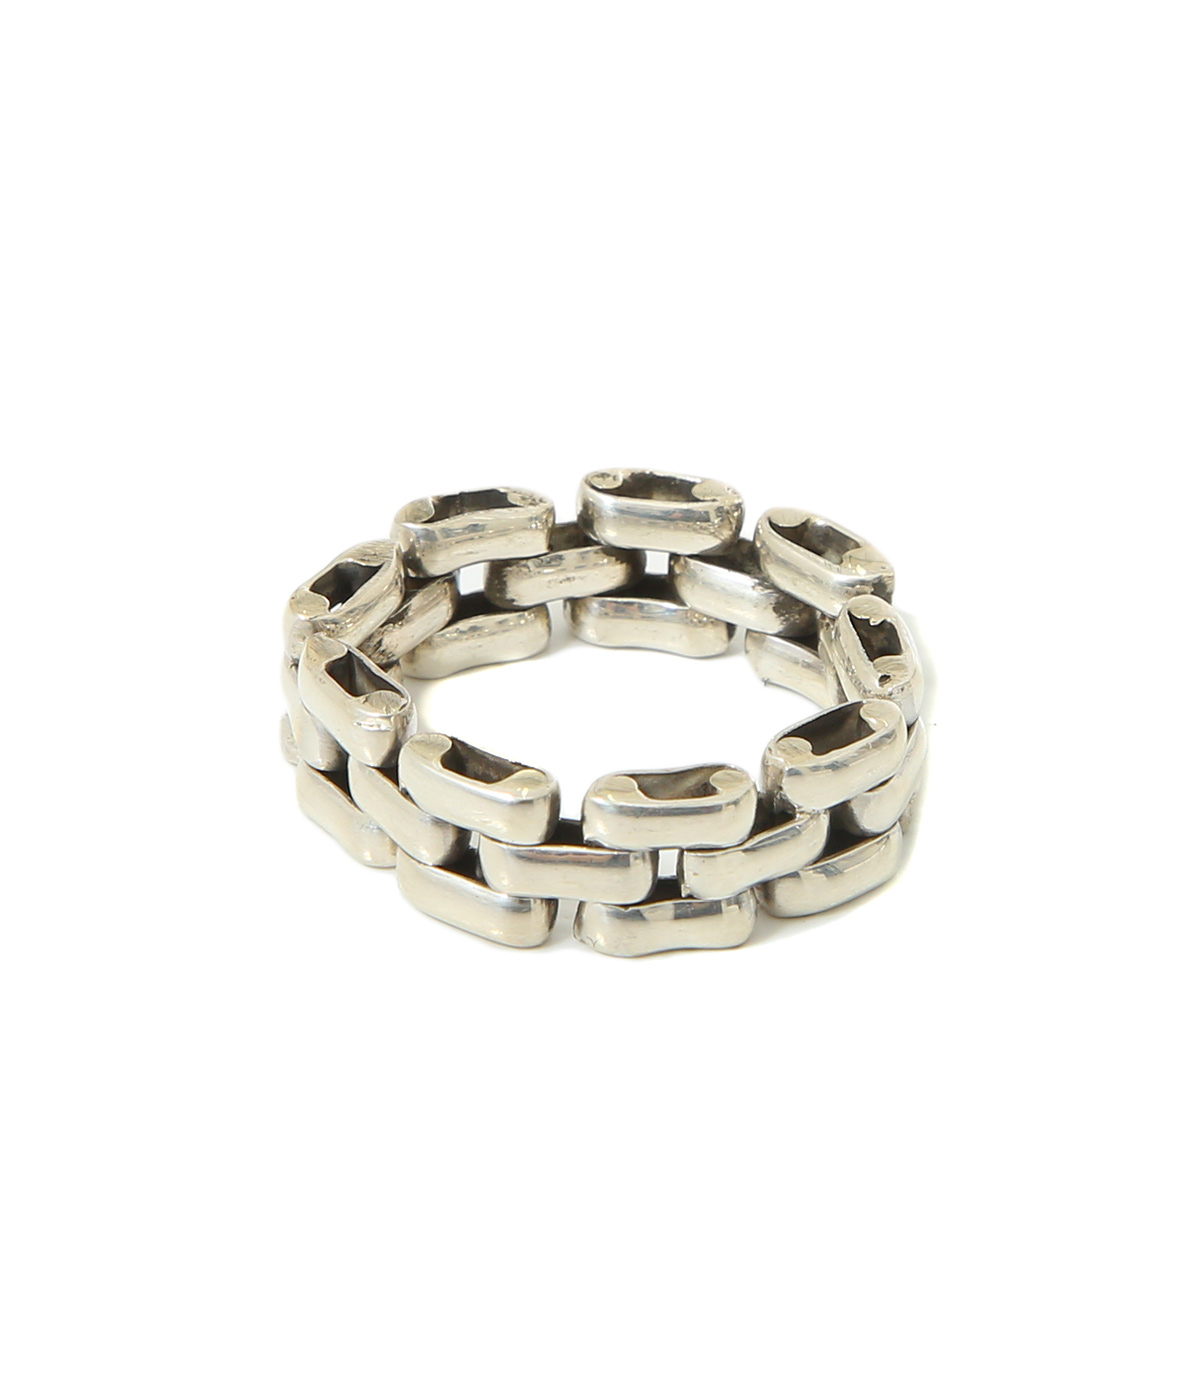 3 LINK RING